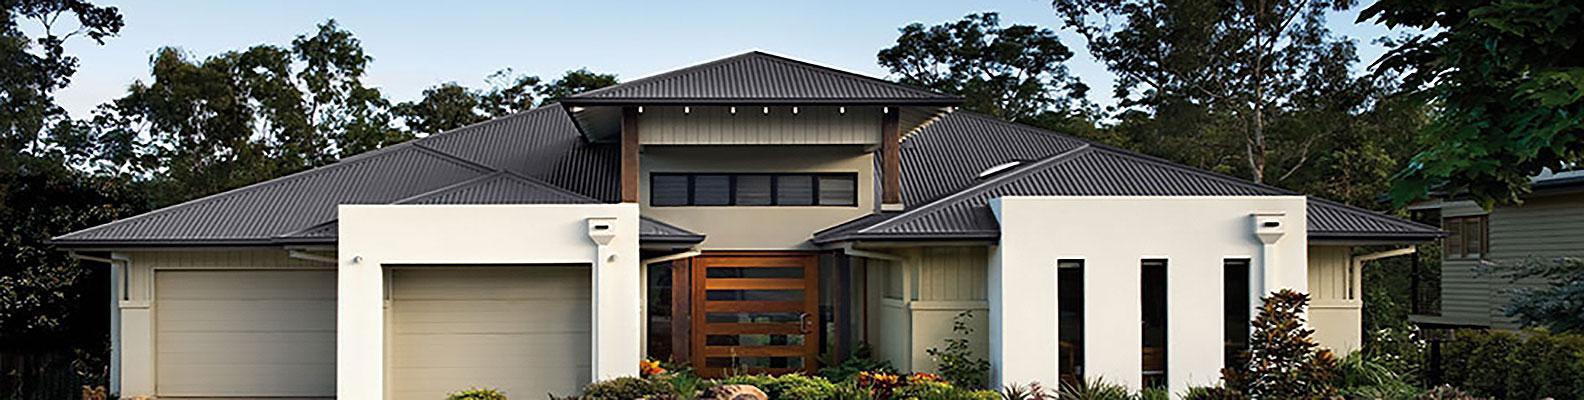 Penrith Sydney based Quikdeck Roofing Contractors offer comprehensive residential roofing services.